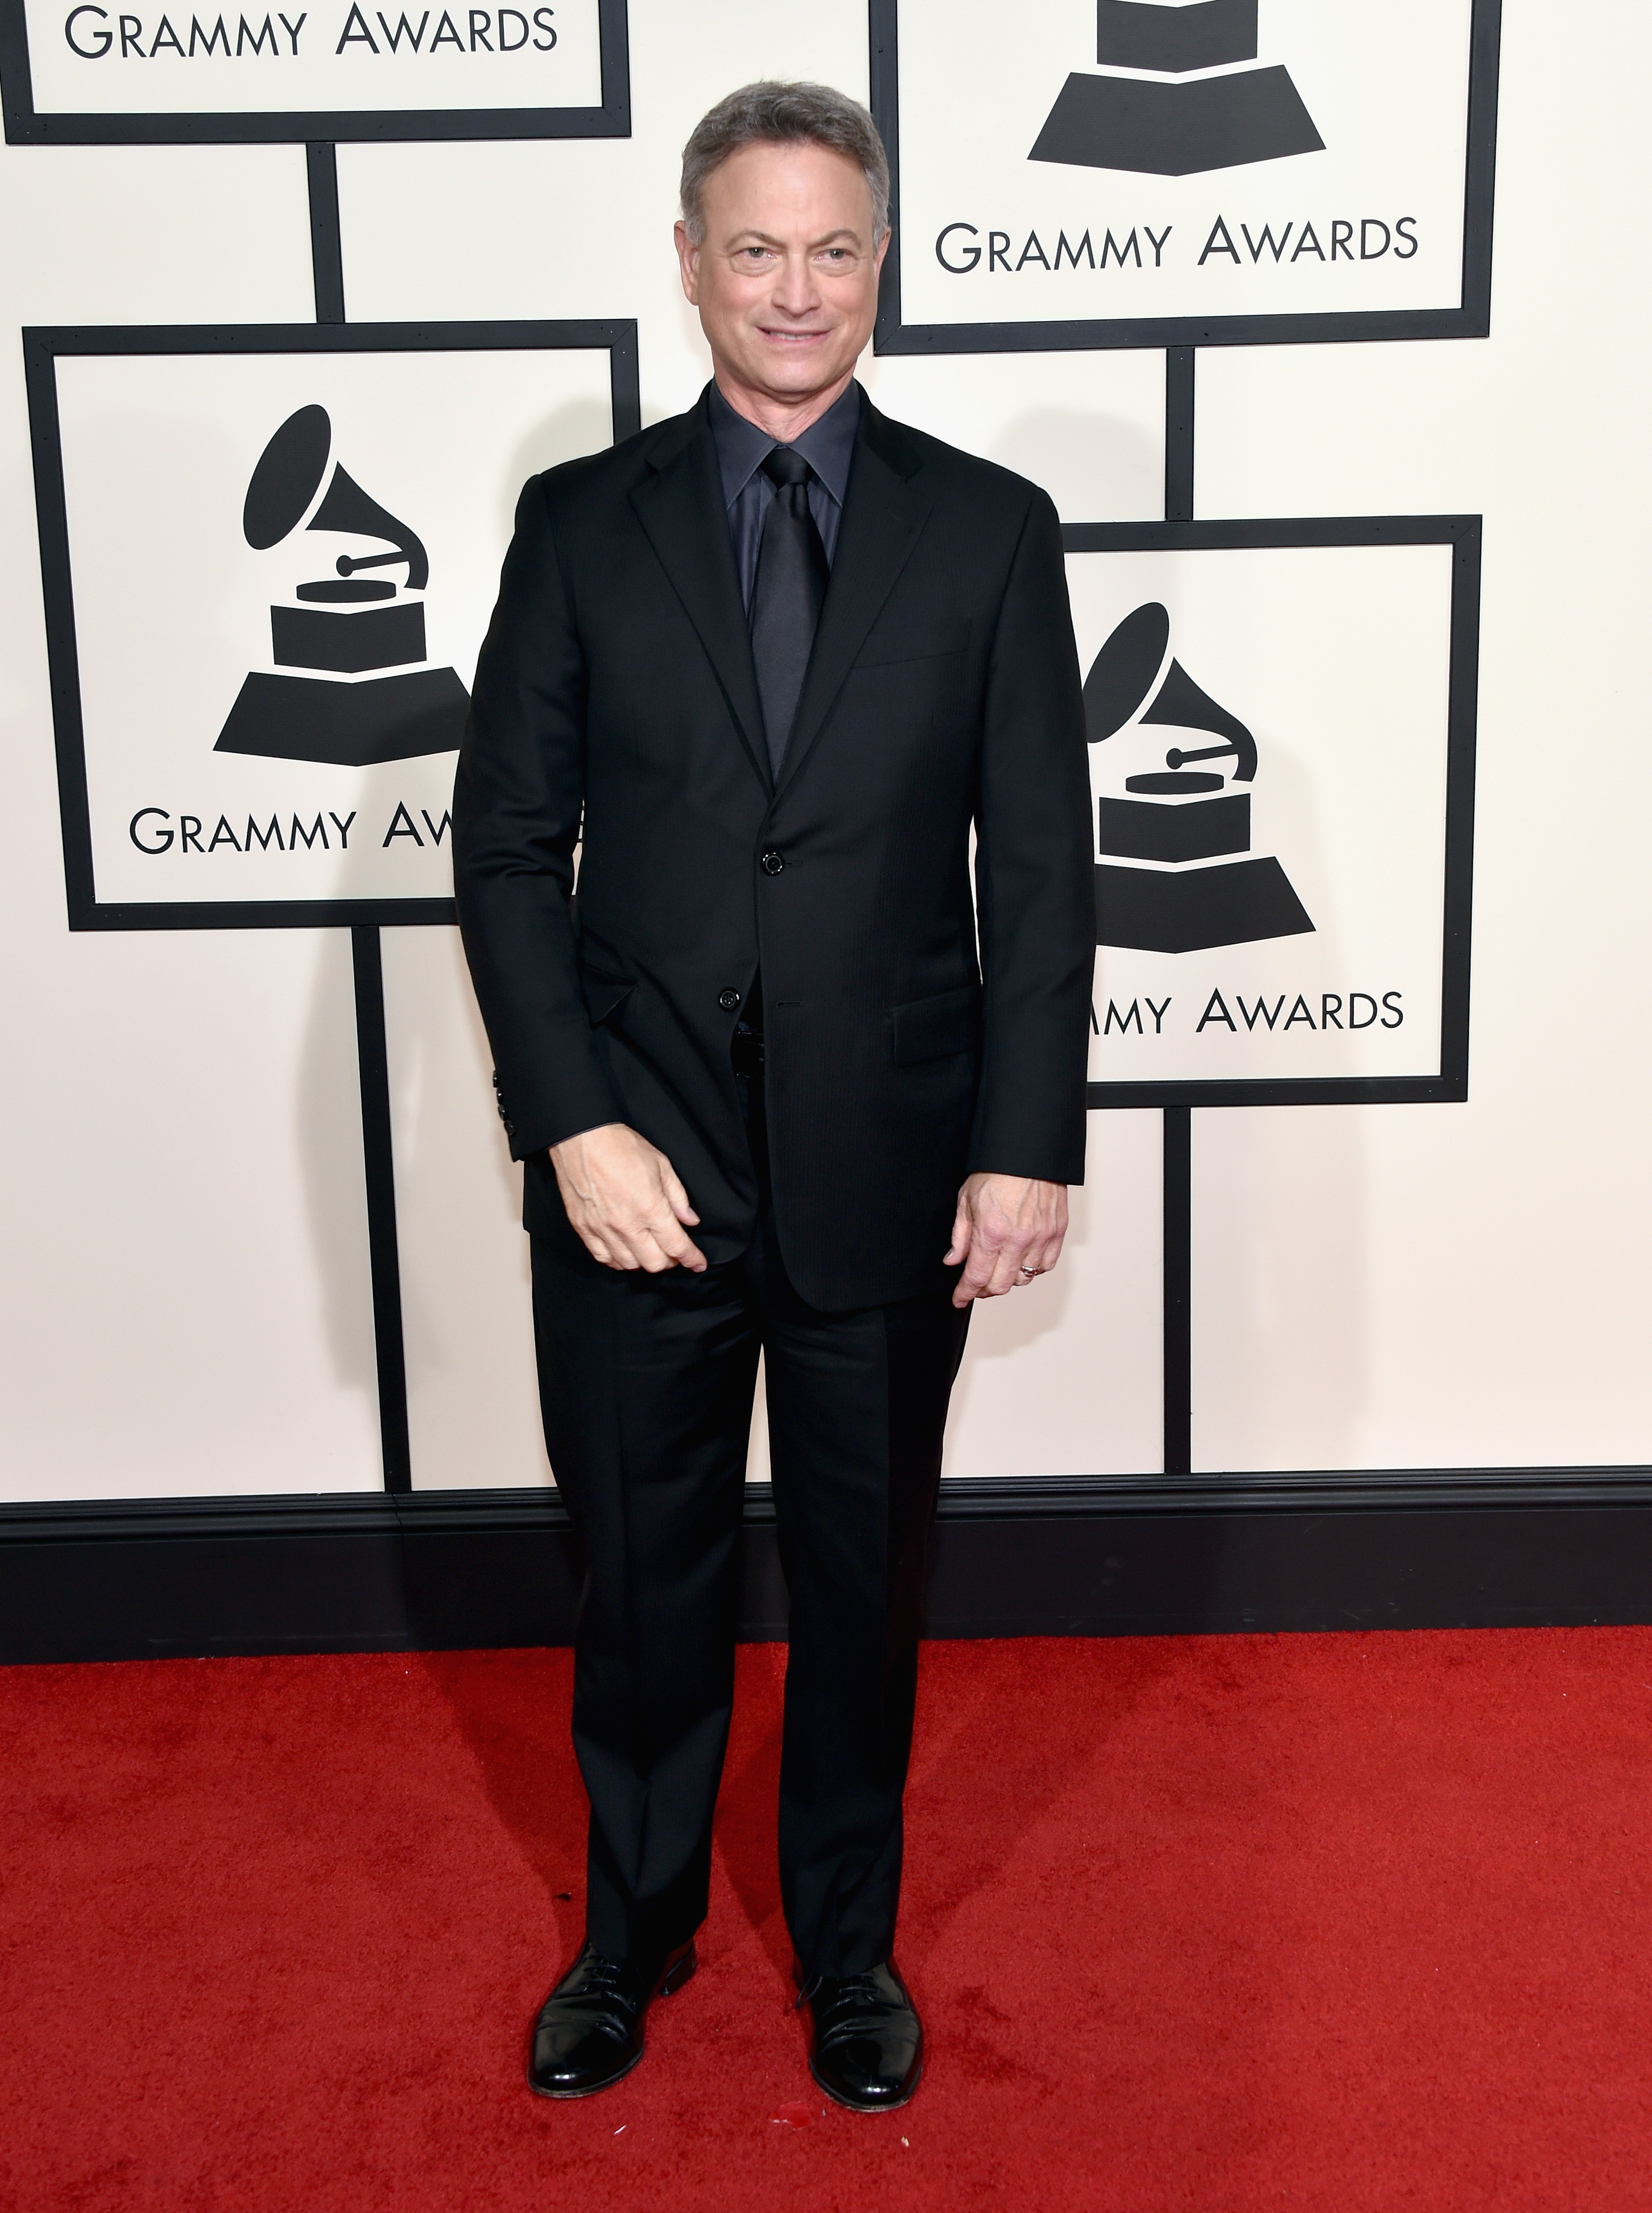 Gary Sinise attends the 58th GRAMMY Awards at Staples Center on Feb. 15, 2016 in Los Angeles.